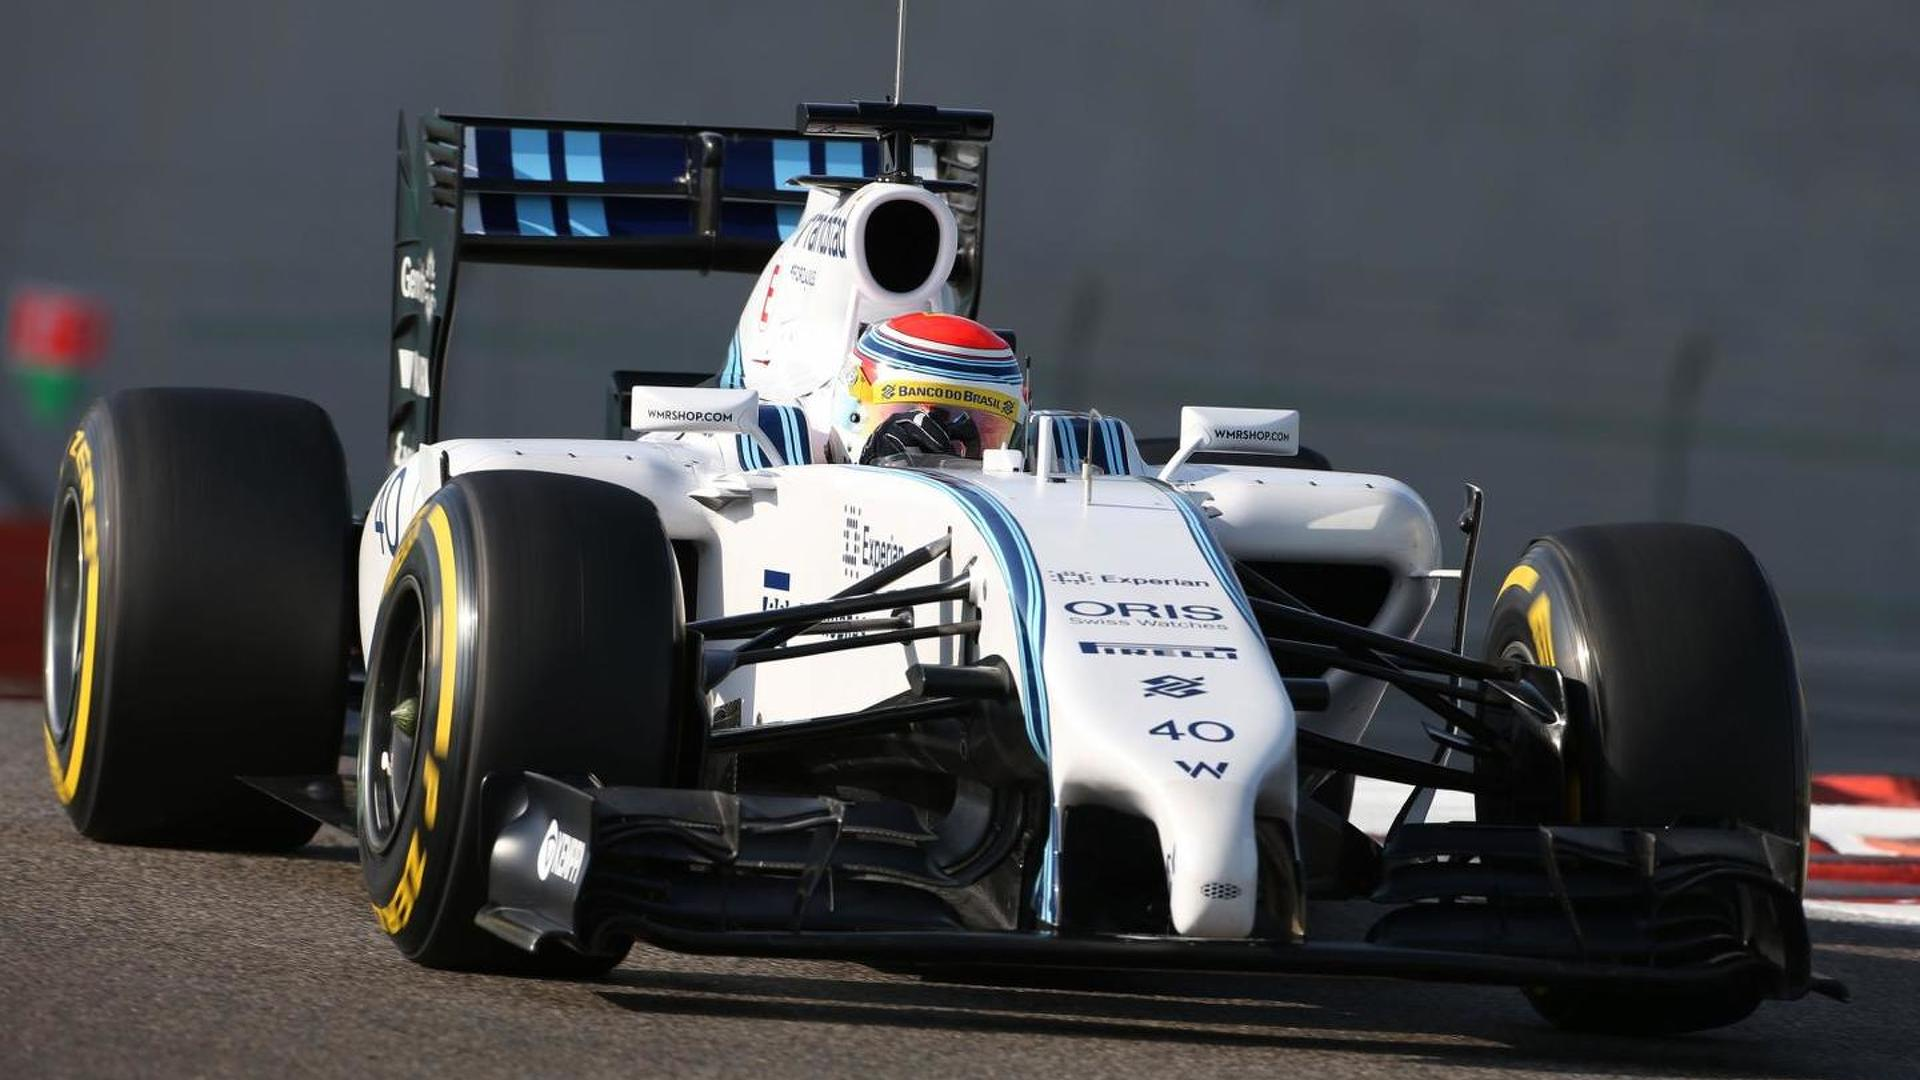 Williams' next step will be harder - Symonds